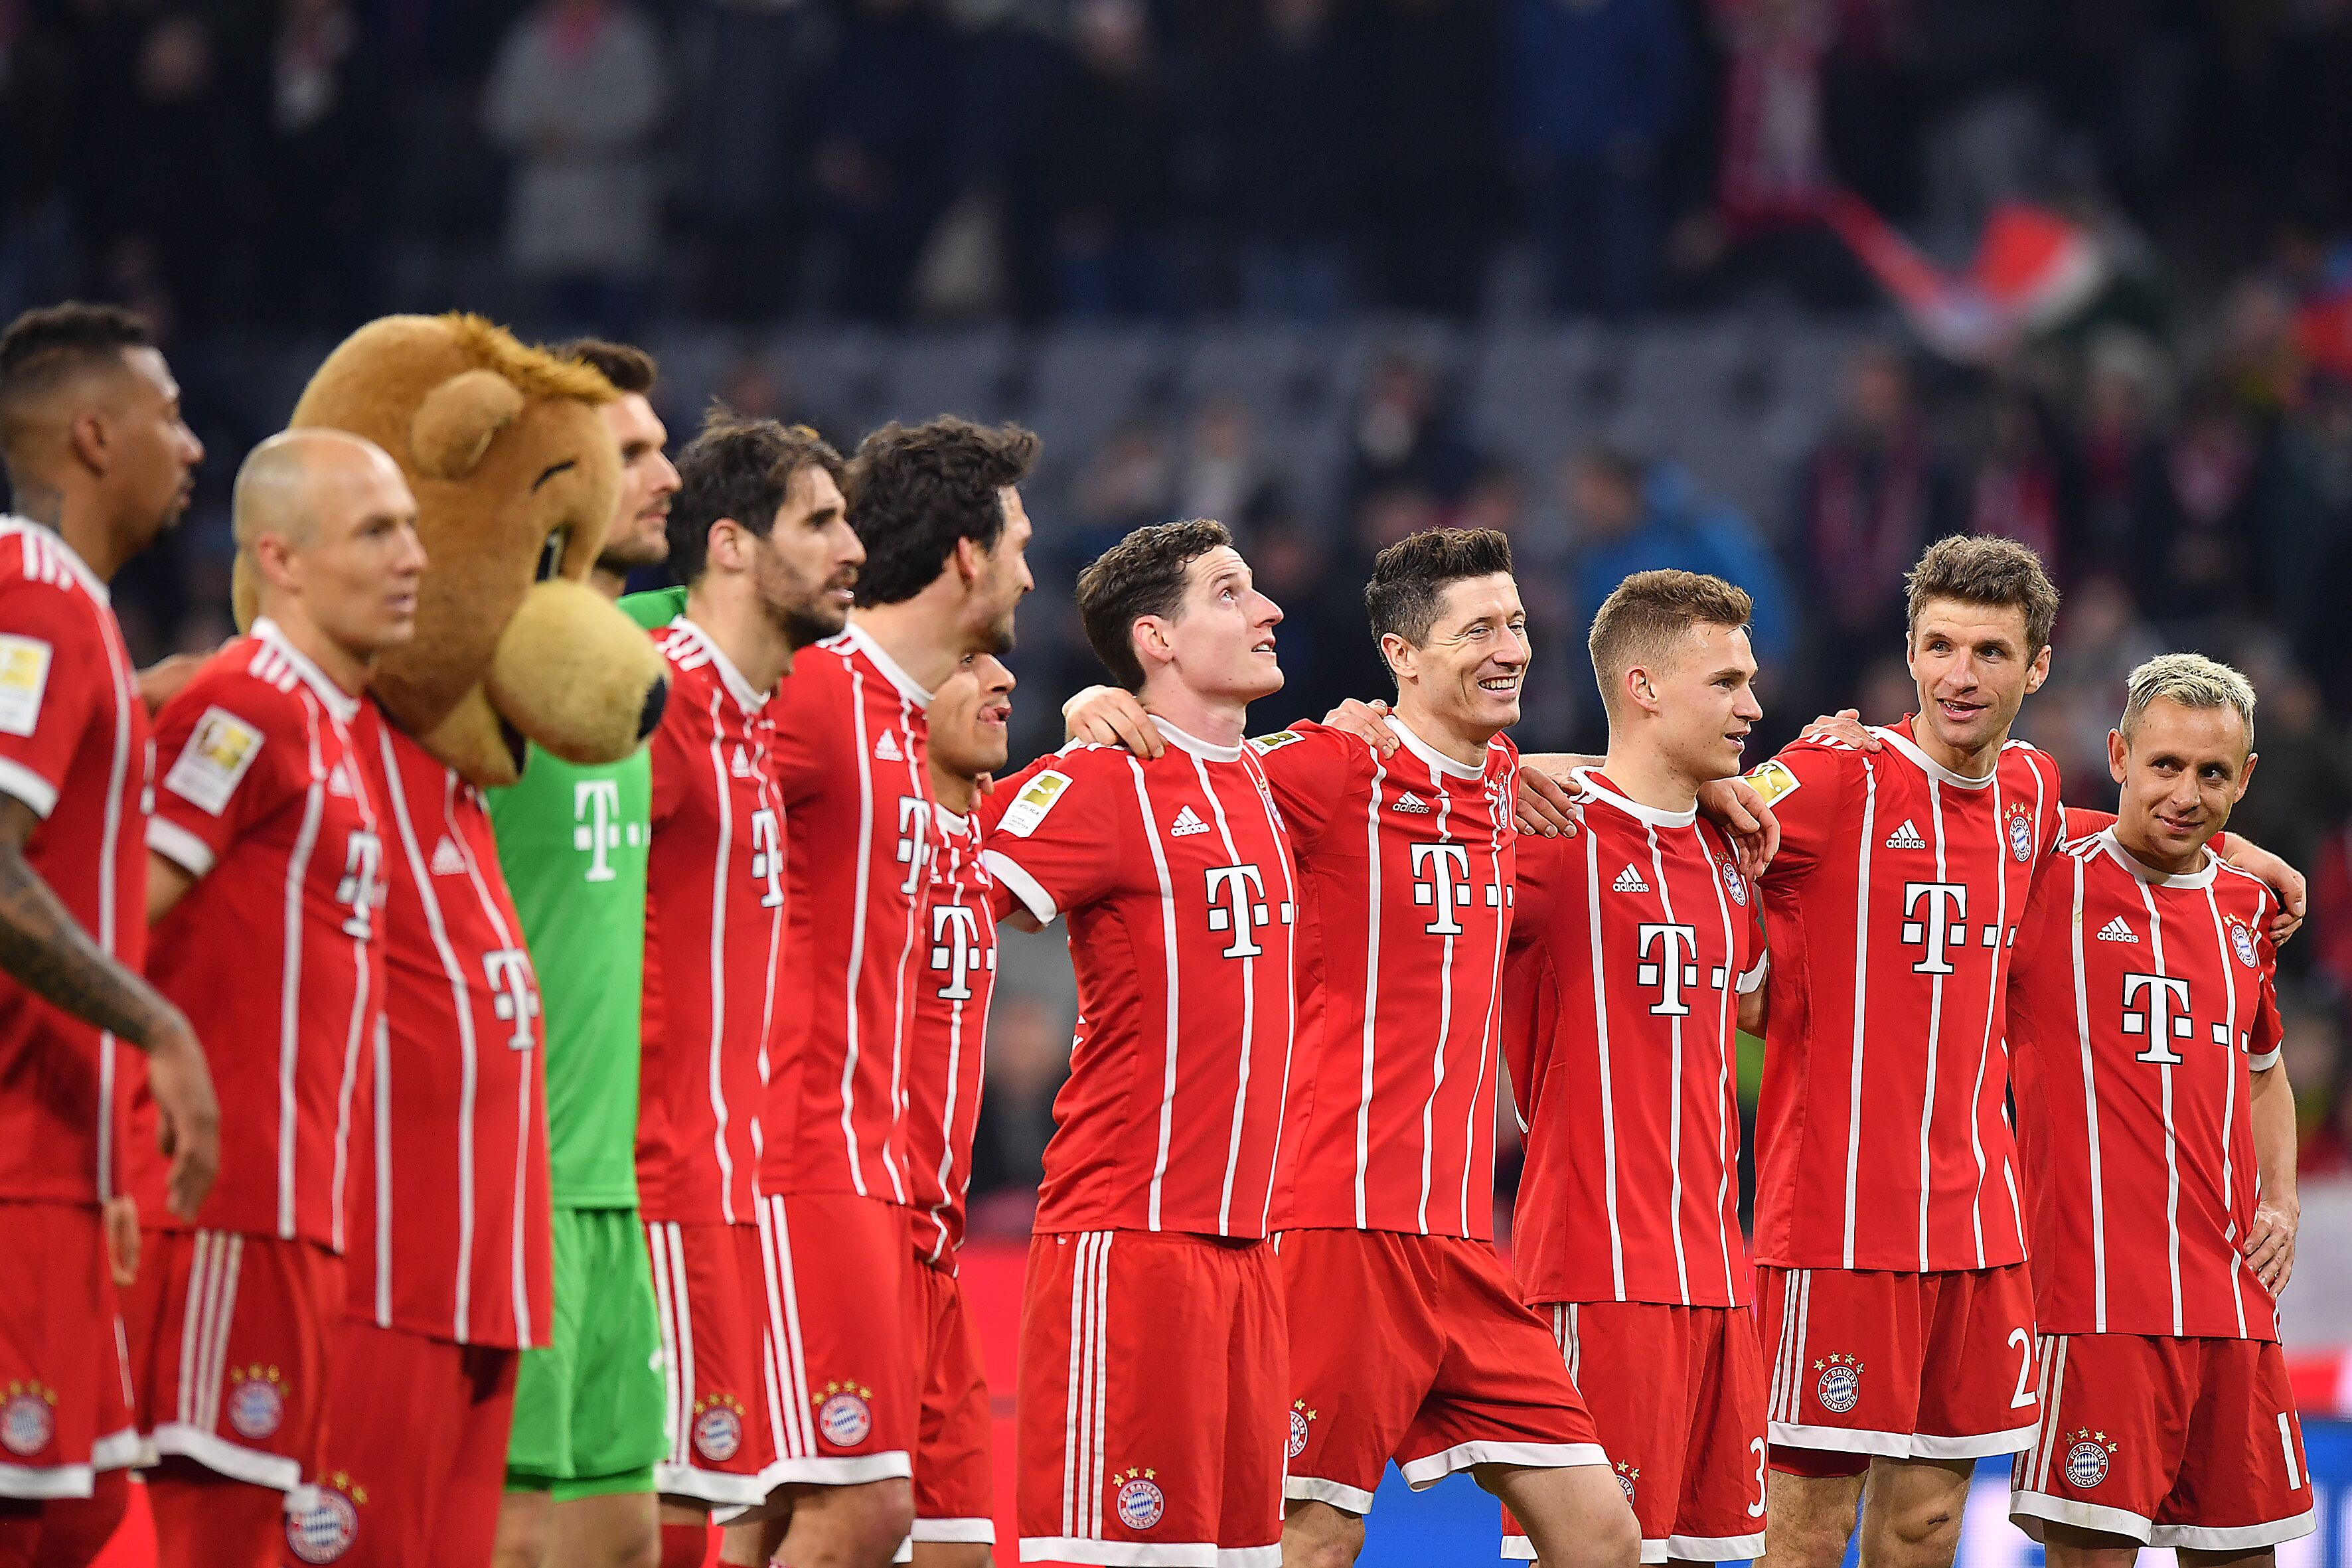 bayern munich - photo #34